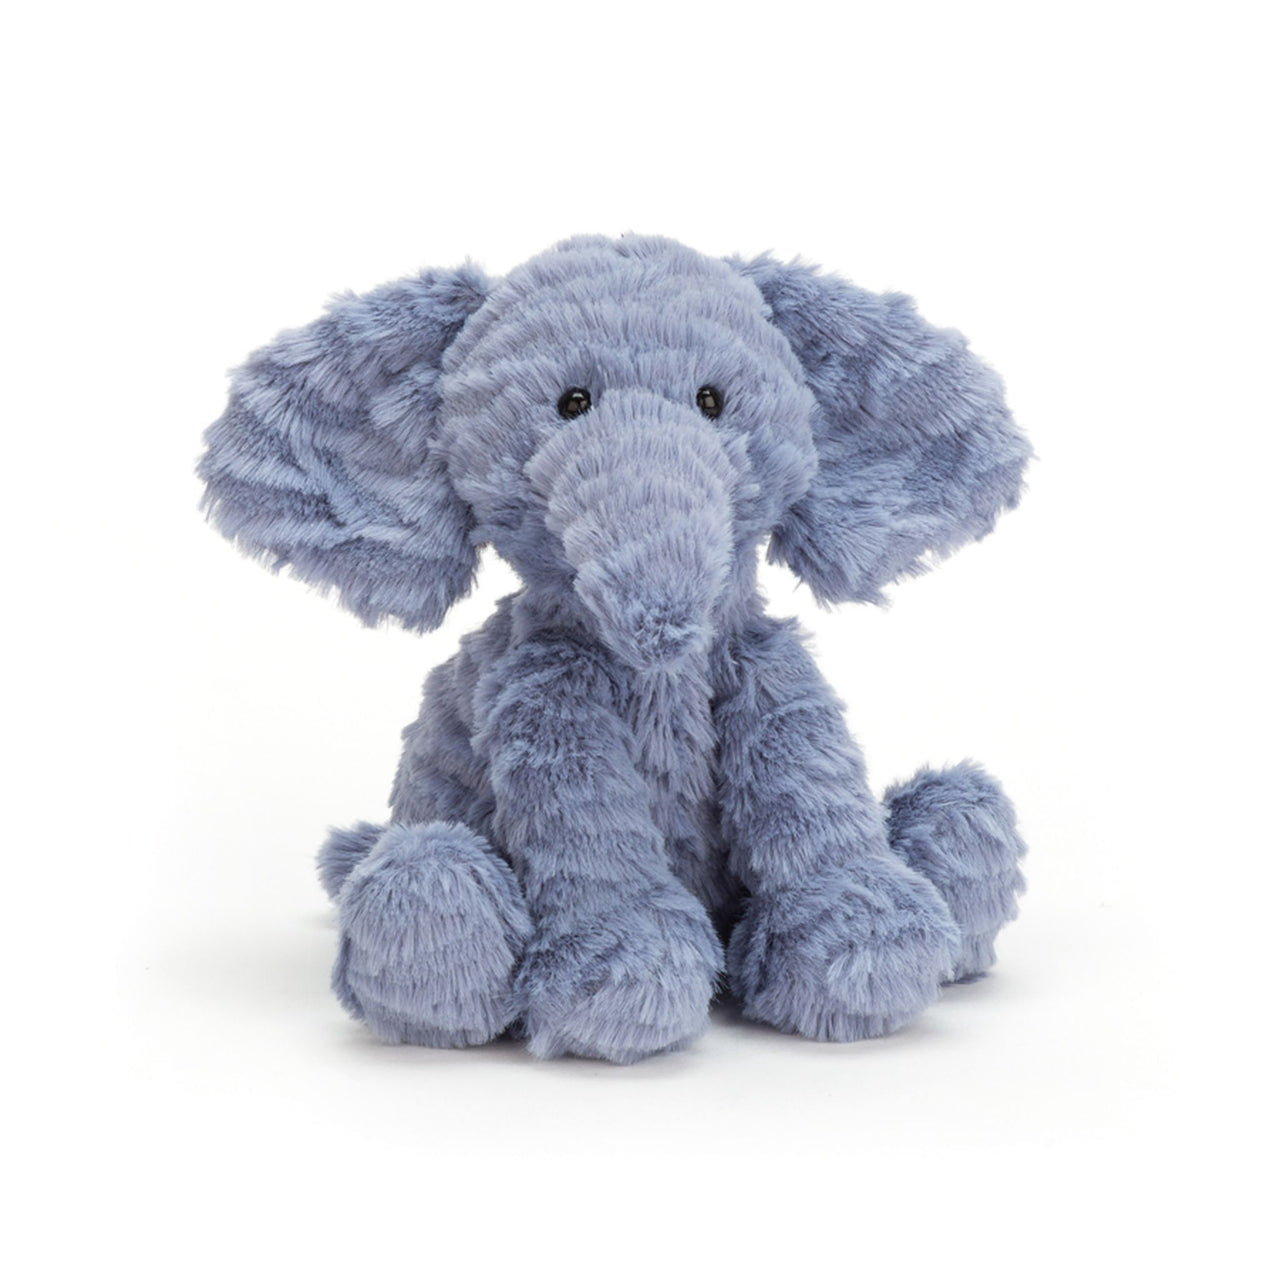 Jellycat Fuddlewuddle Elephant Baby